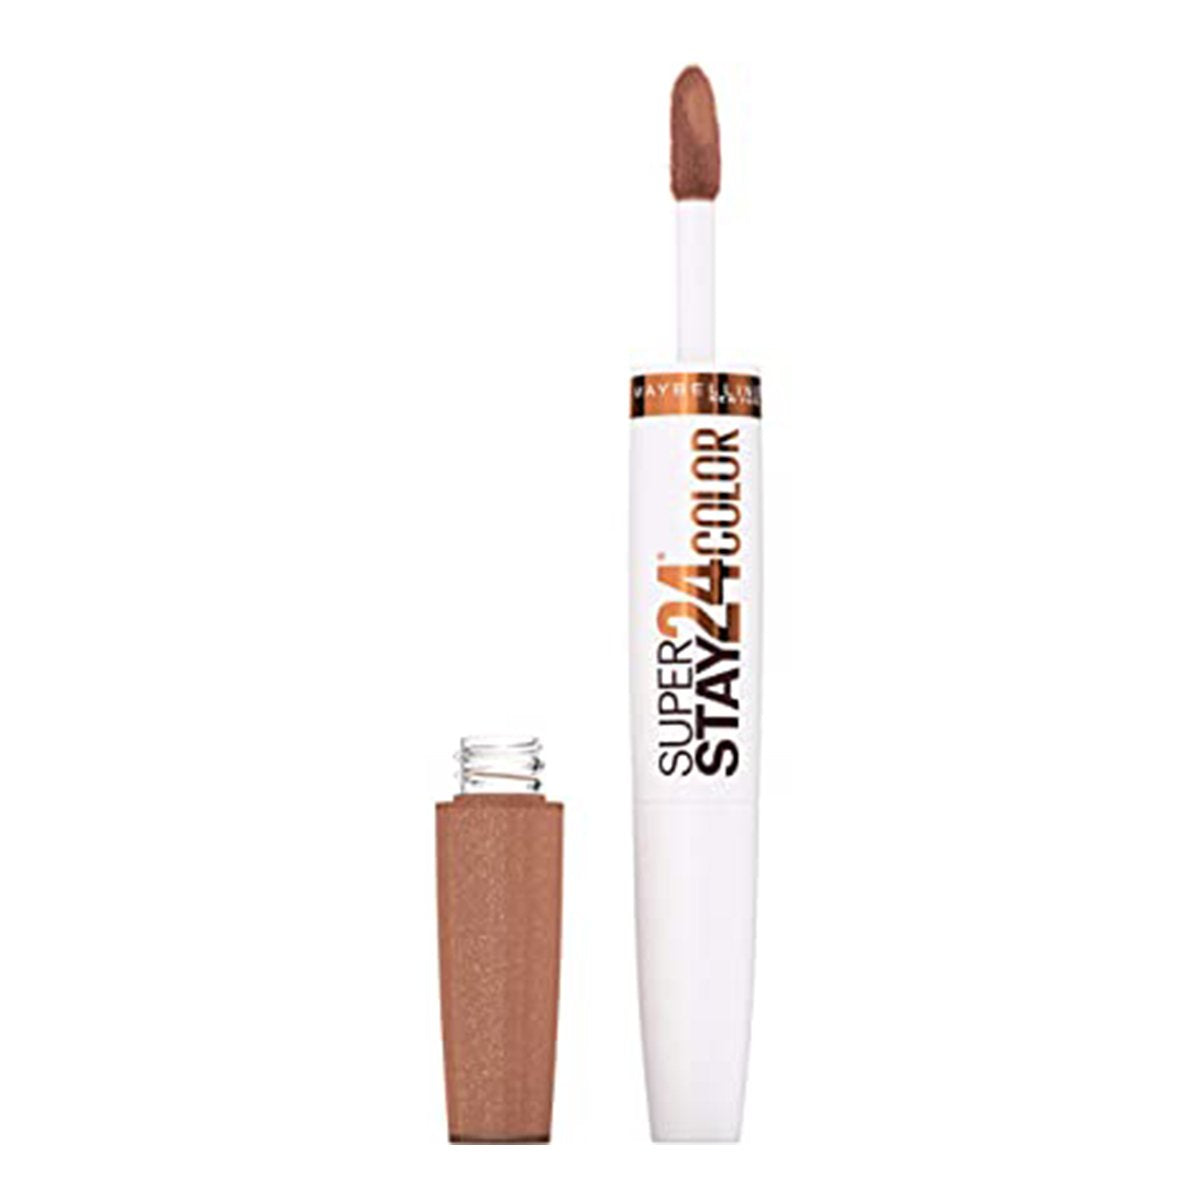 SUPERSTAY 24 2 STEP LIQUID LIPSTICK COFFEE EDITION CHAI ONCE MORE - MAYBELLINE